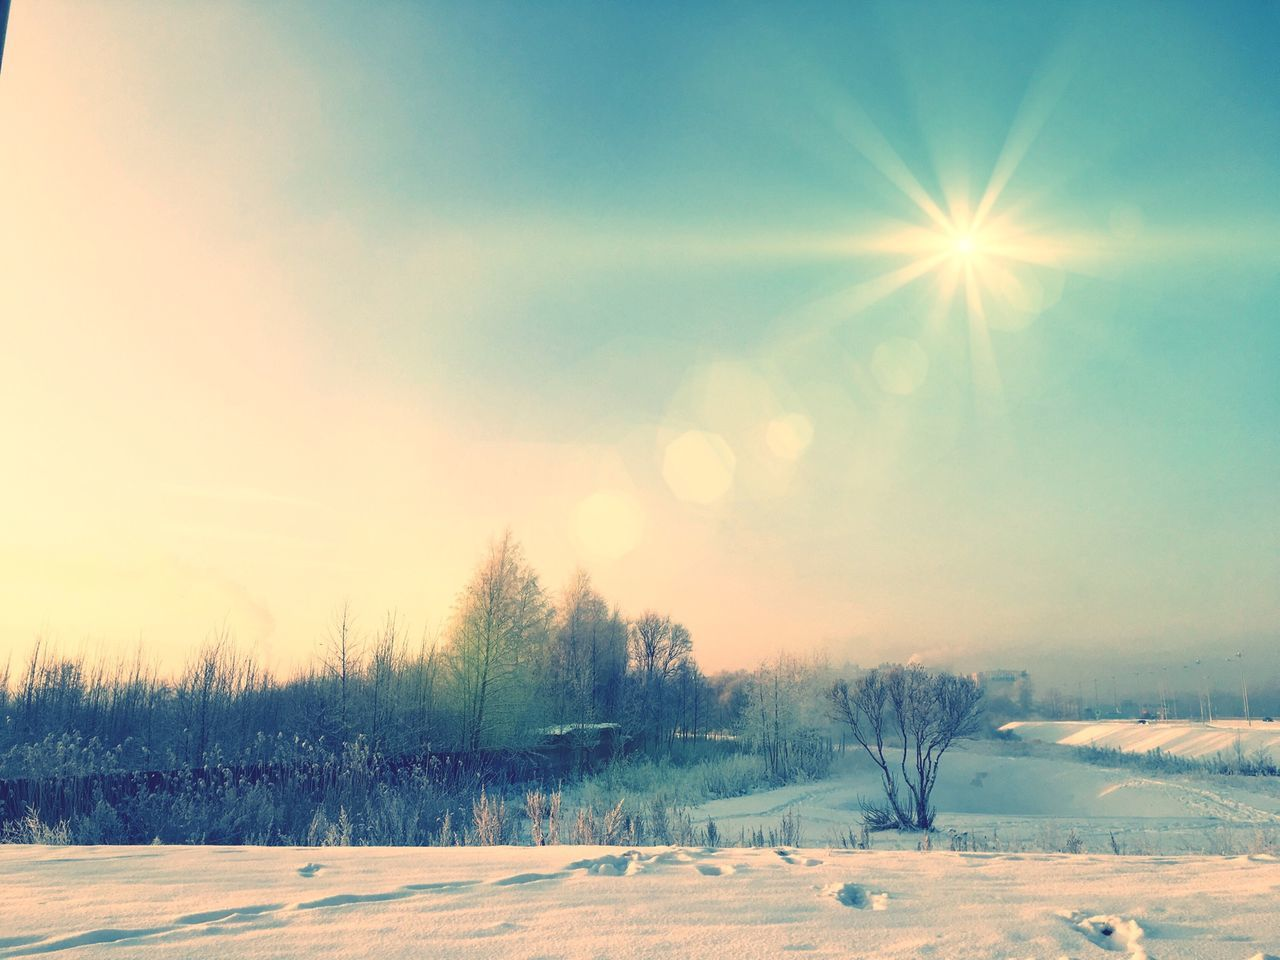 snow, cold temperature, winter, lens flare, nature, sun, weather, sunlight, beauty in nature, sunbeam, tranquility, tree, field, tranquil scene, scenics, outdoors, landscape, frozen, no people, sky, day